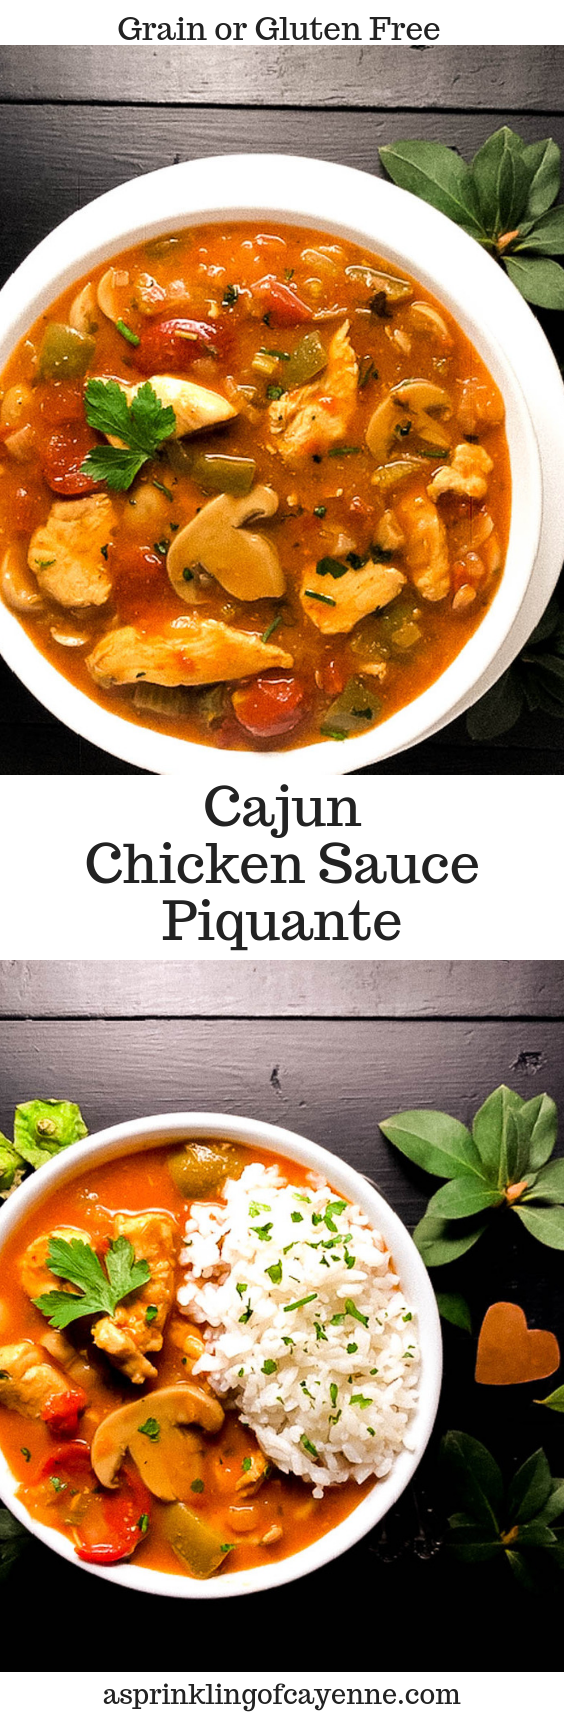 Grain Free or Gluten Free Cajun Chicken Sauce Piquante Pinterest Pin | https://asprinklingofcayenne.com